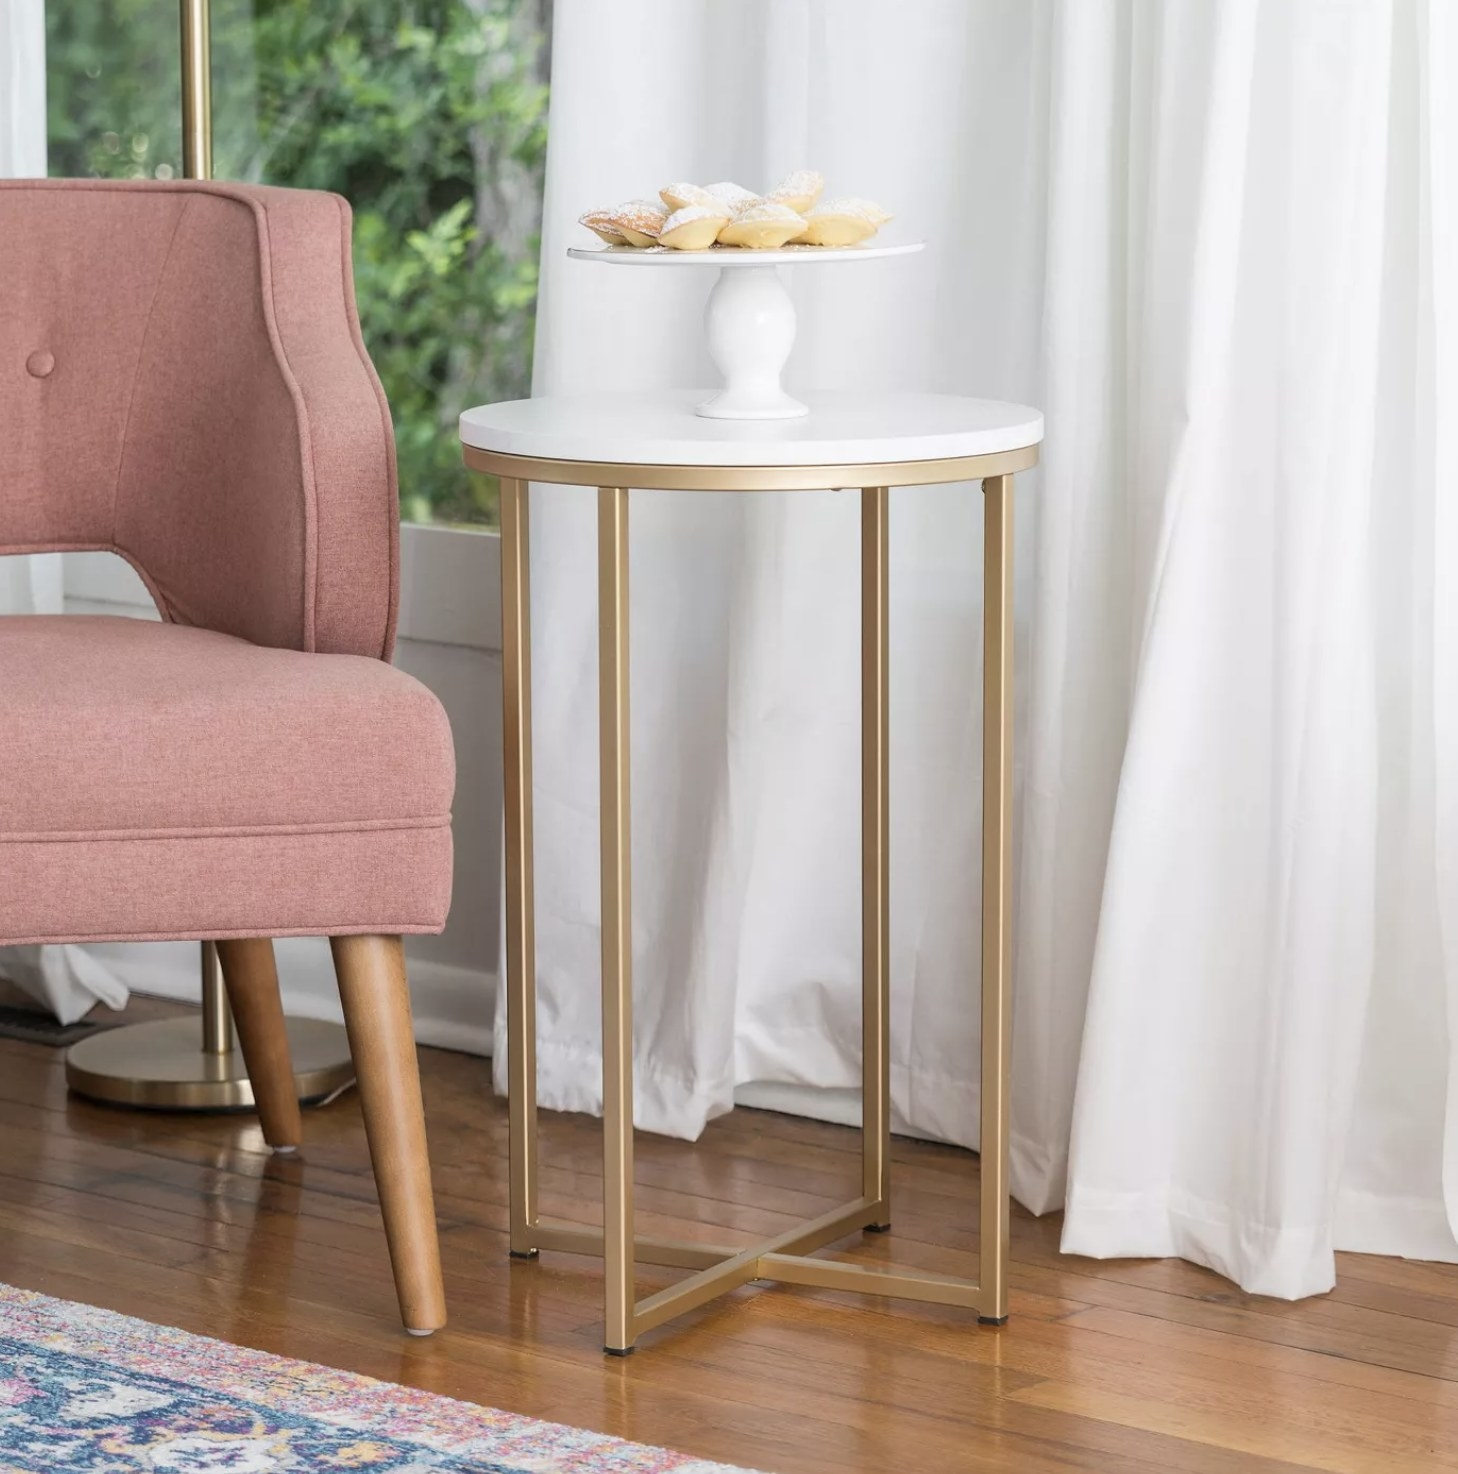 A gold chrome side table with a white tabletop in a living room